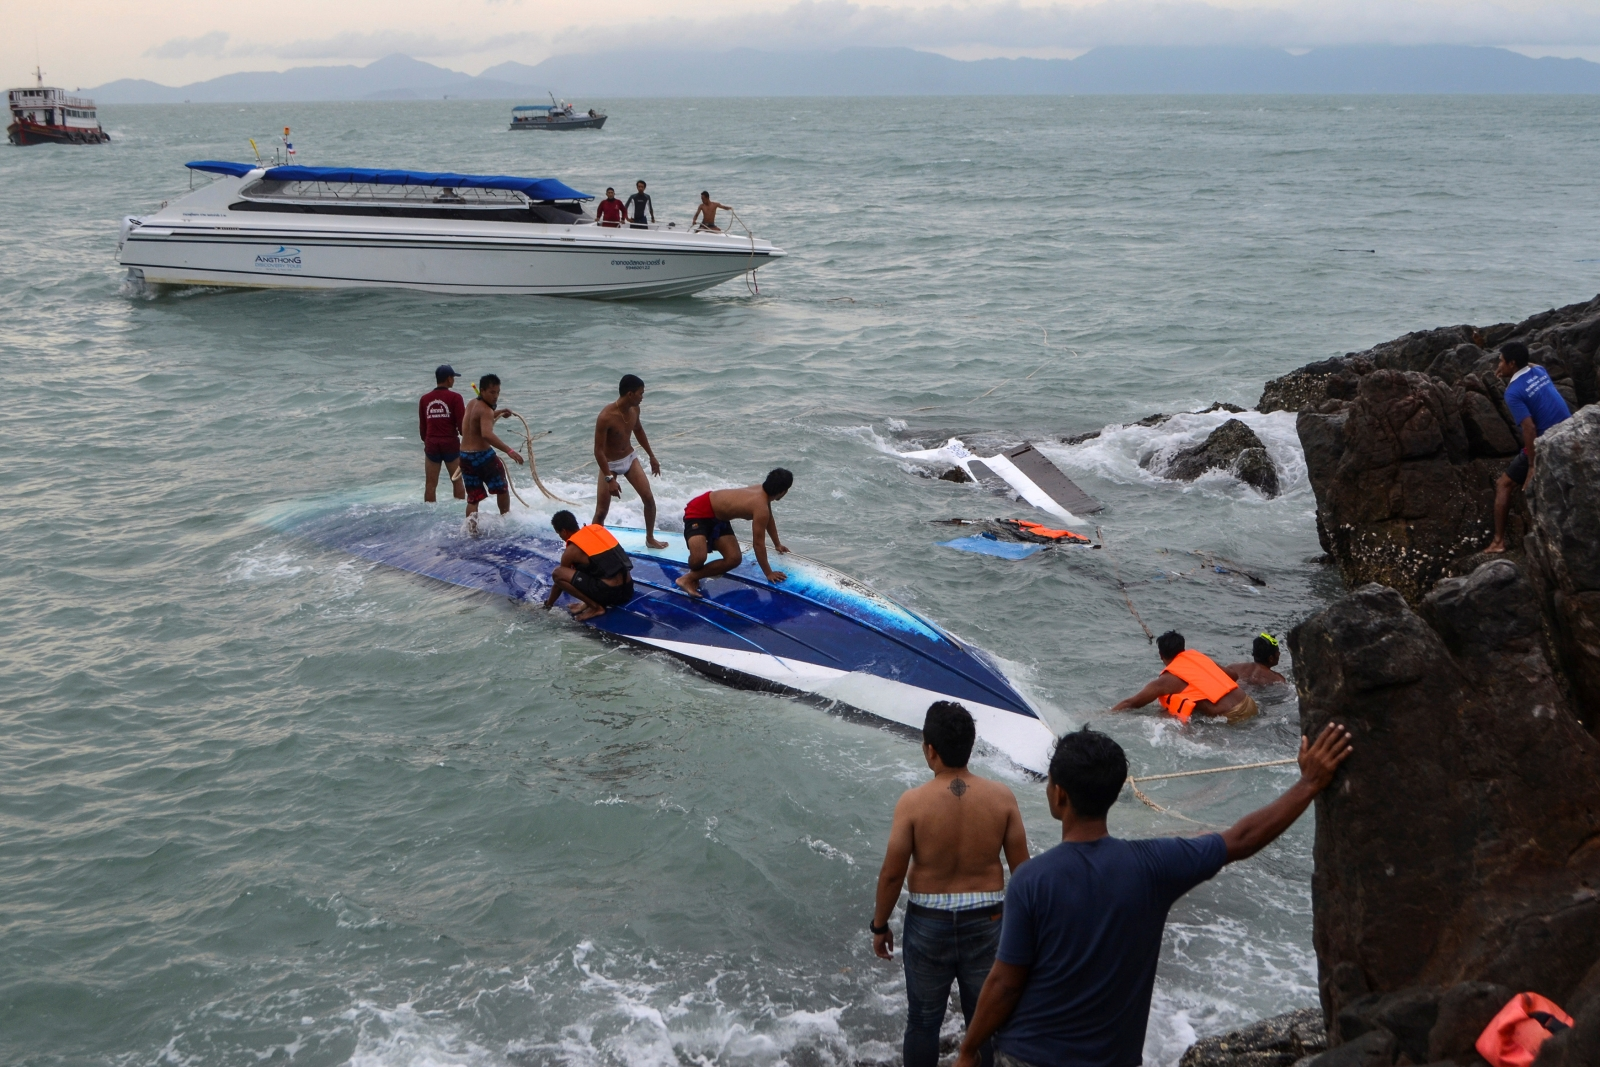 Rescue workers search for victims after a speedboat crashed